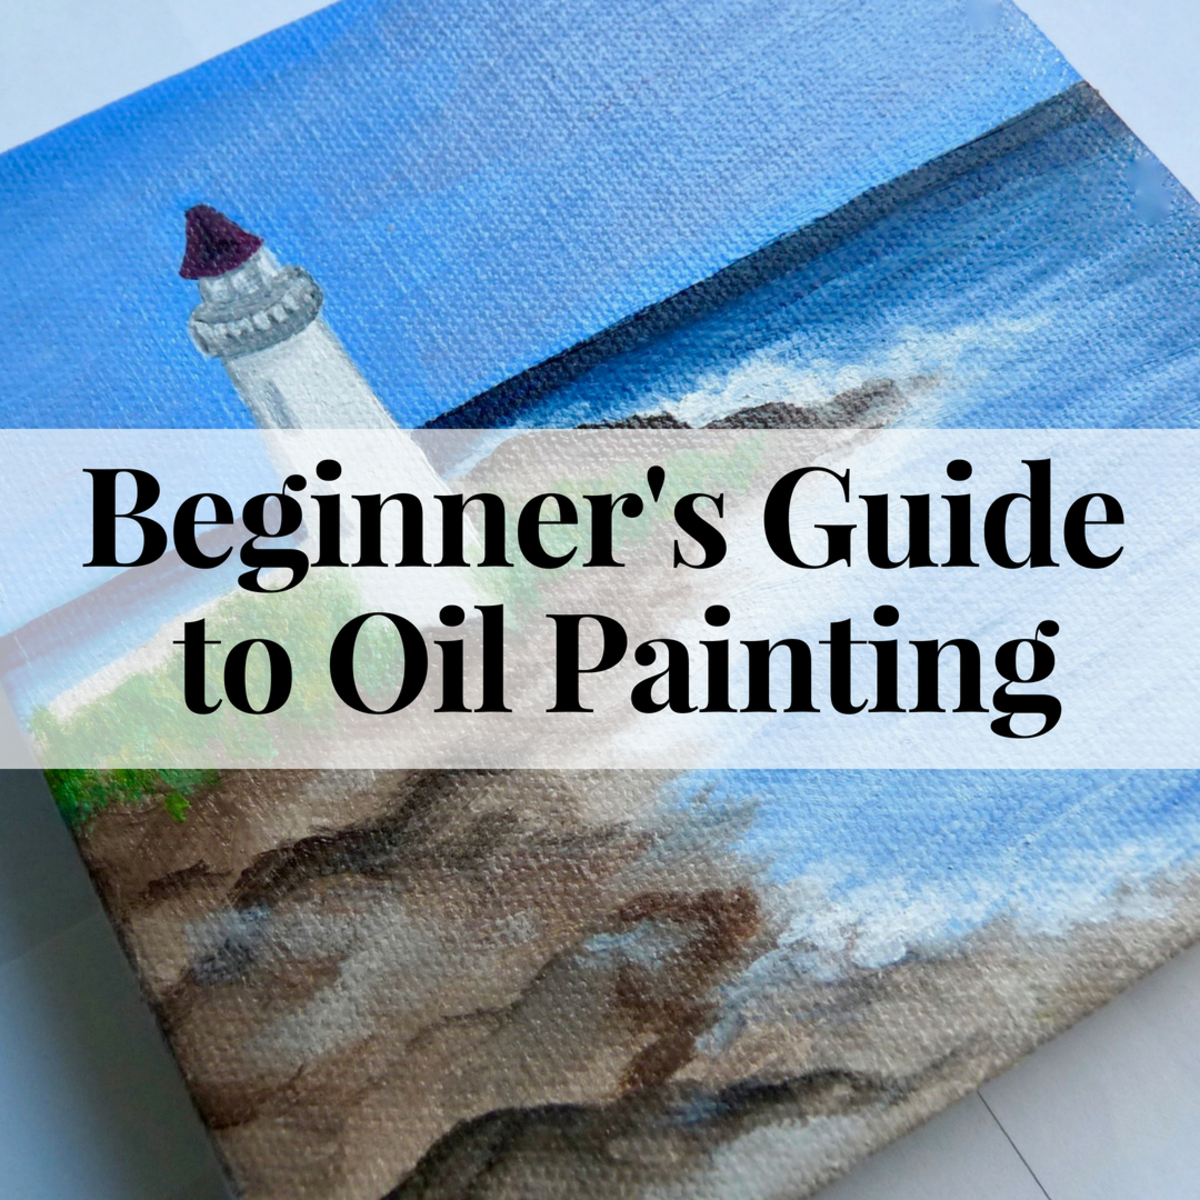 Beginner's Guide to Oil Painting: Part 3